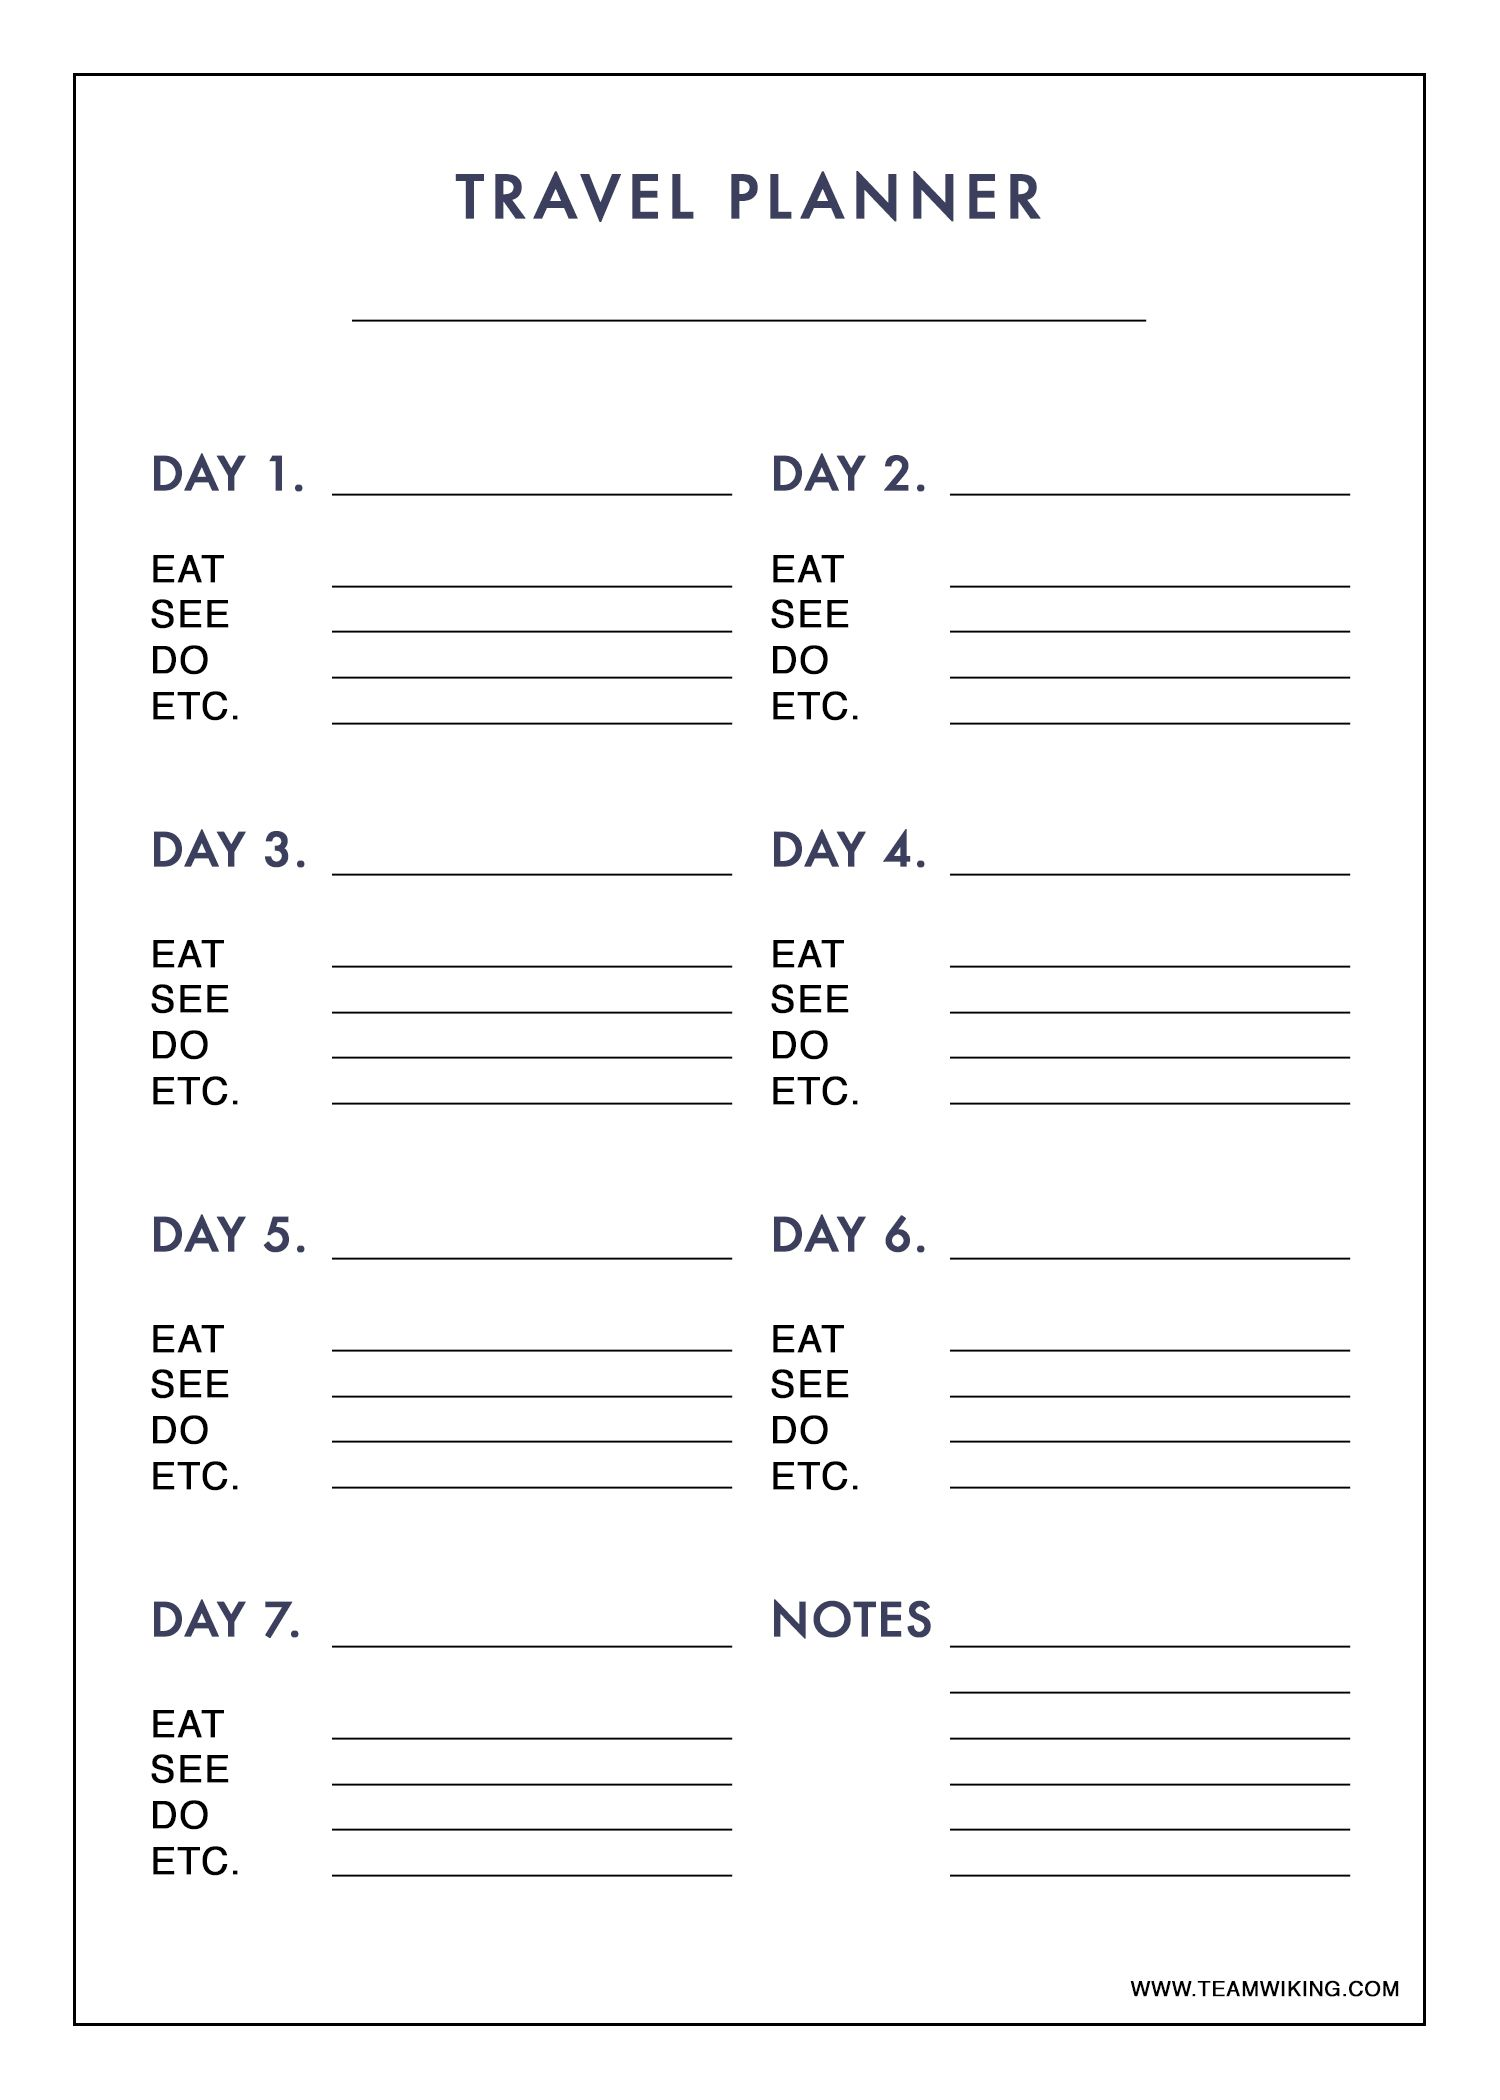 Free Printable 7 Day Travel Planner Use To Plan Outfits